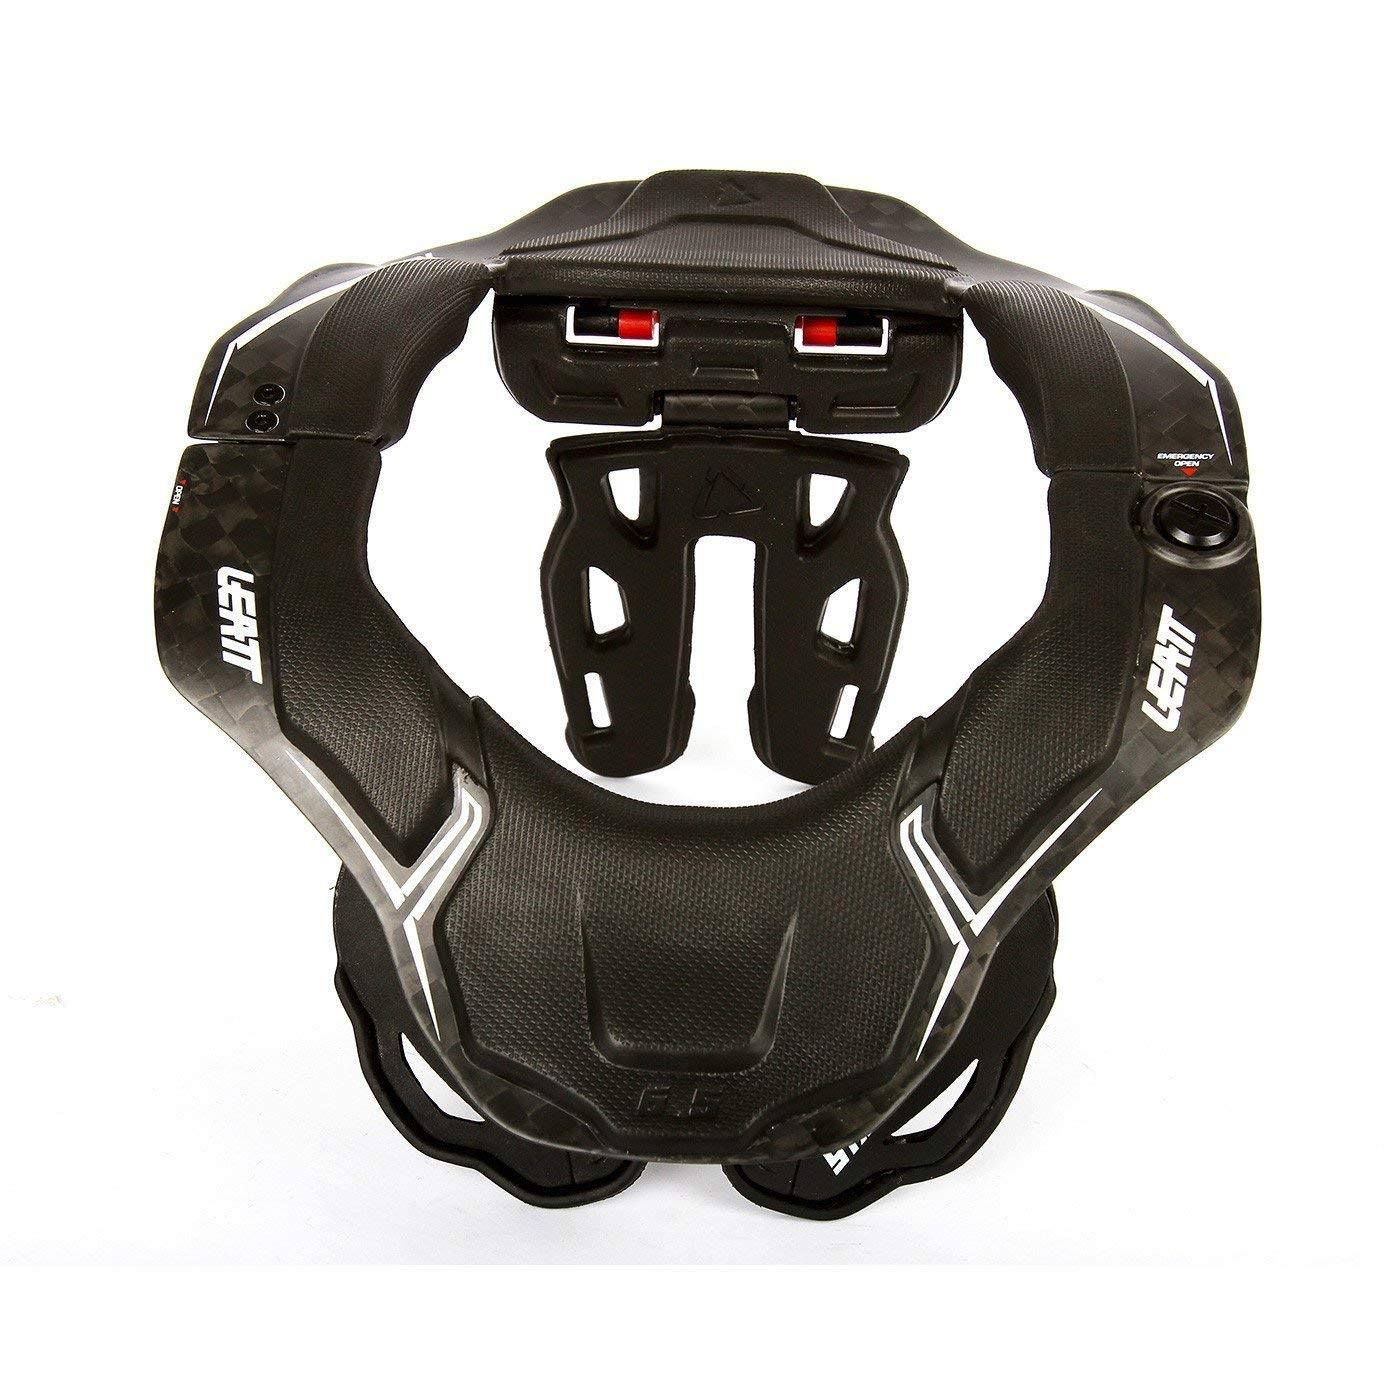 Leatt GPX 6.5 Neck Brace (Carbon/Black, Small/Medium) by Leatt Brace (Image #2)